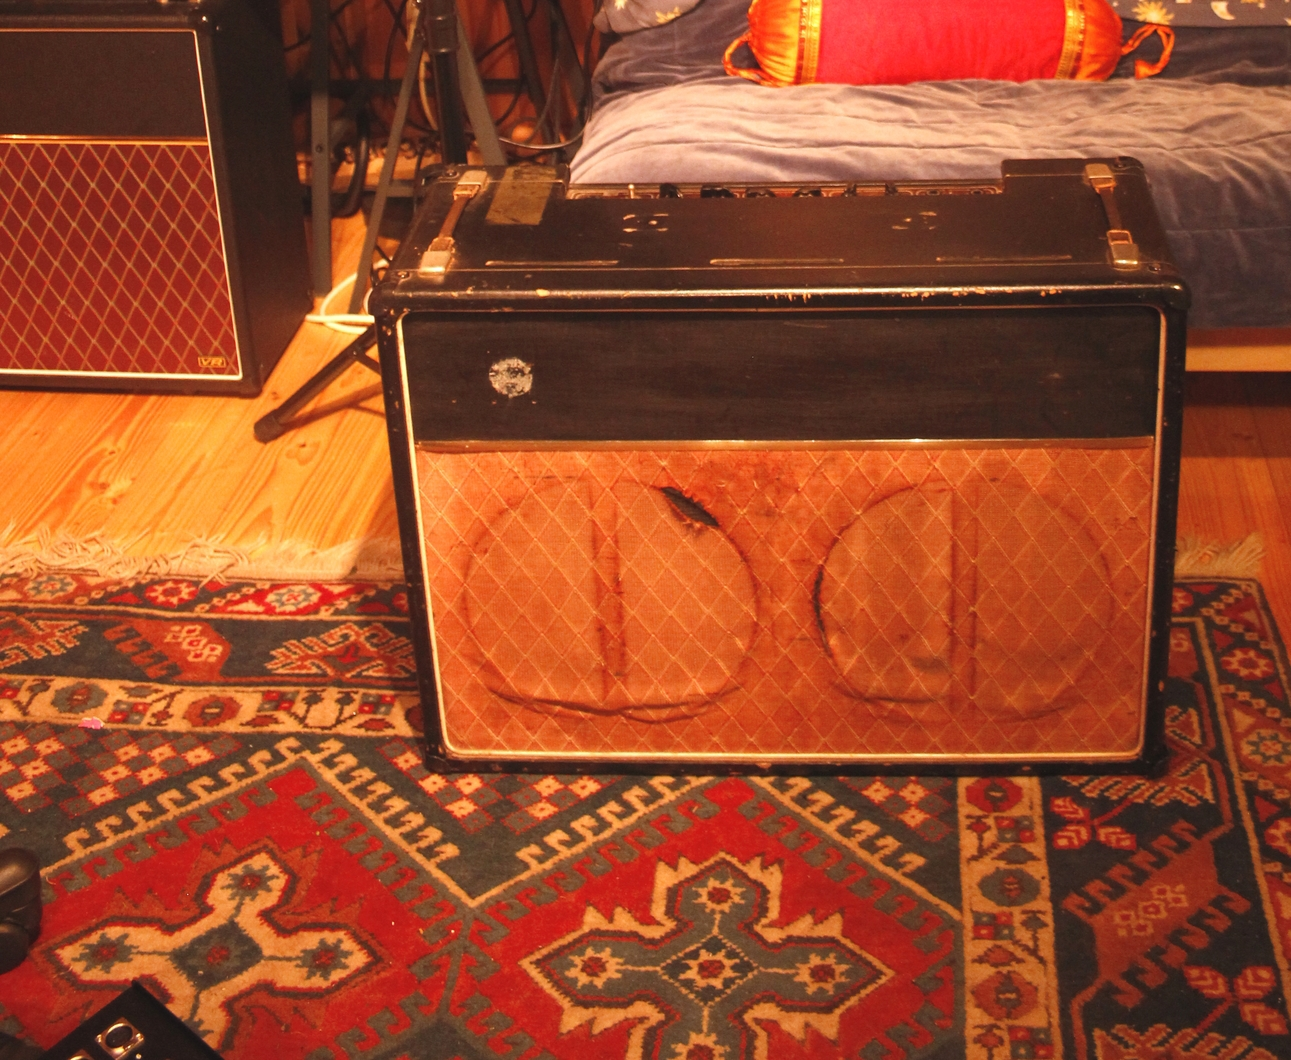 Vox ac15 twin from 1962 with celestion gold. John Lennon used one of these in the early years. My favorite guitar amp.